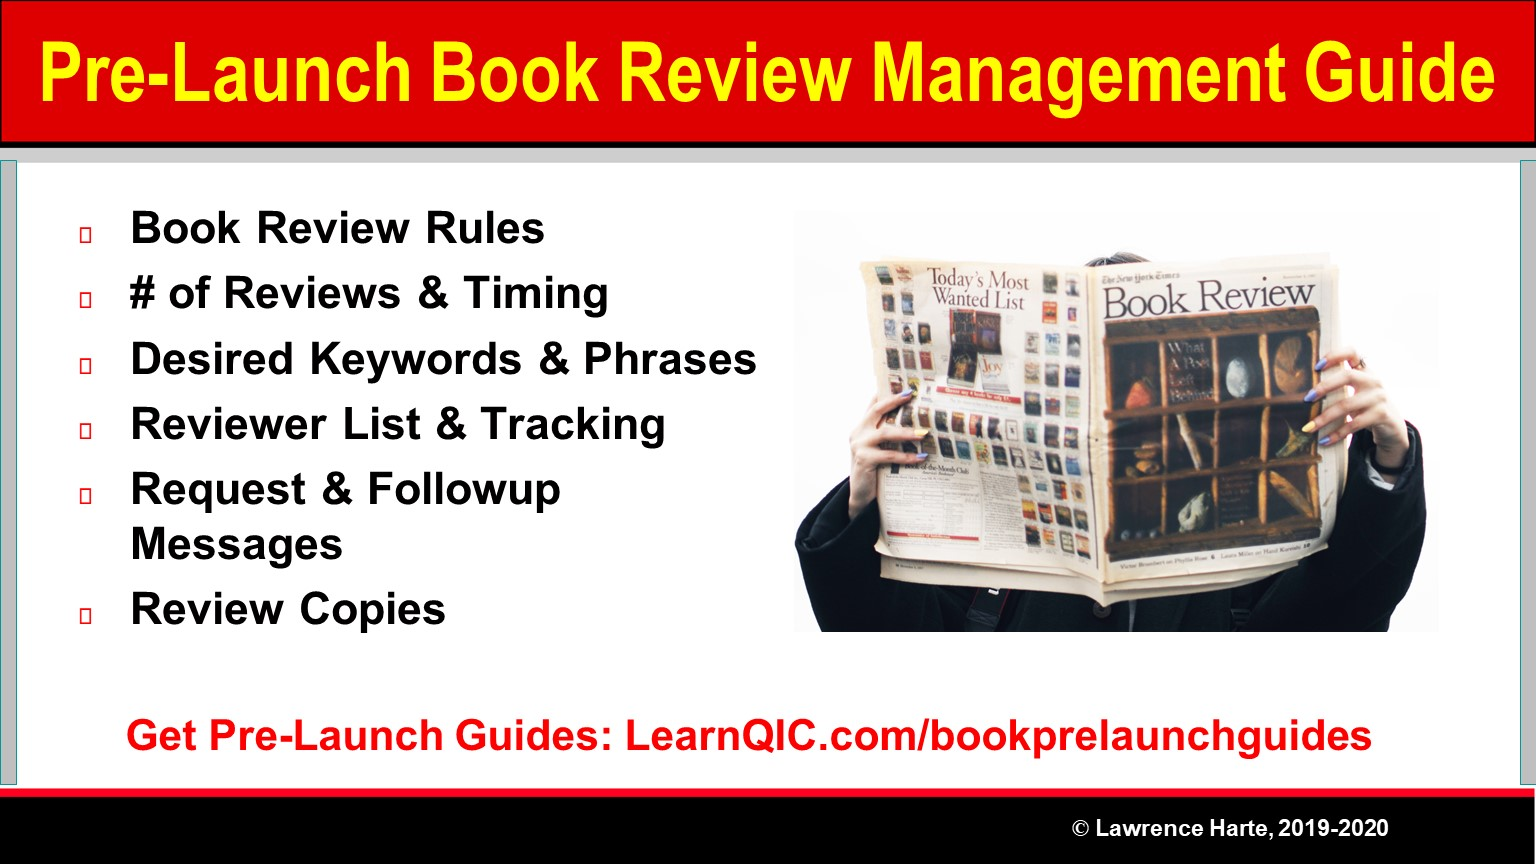 Steps to Get Pre-Launch Book Reviews